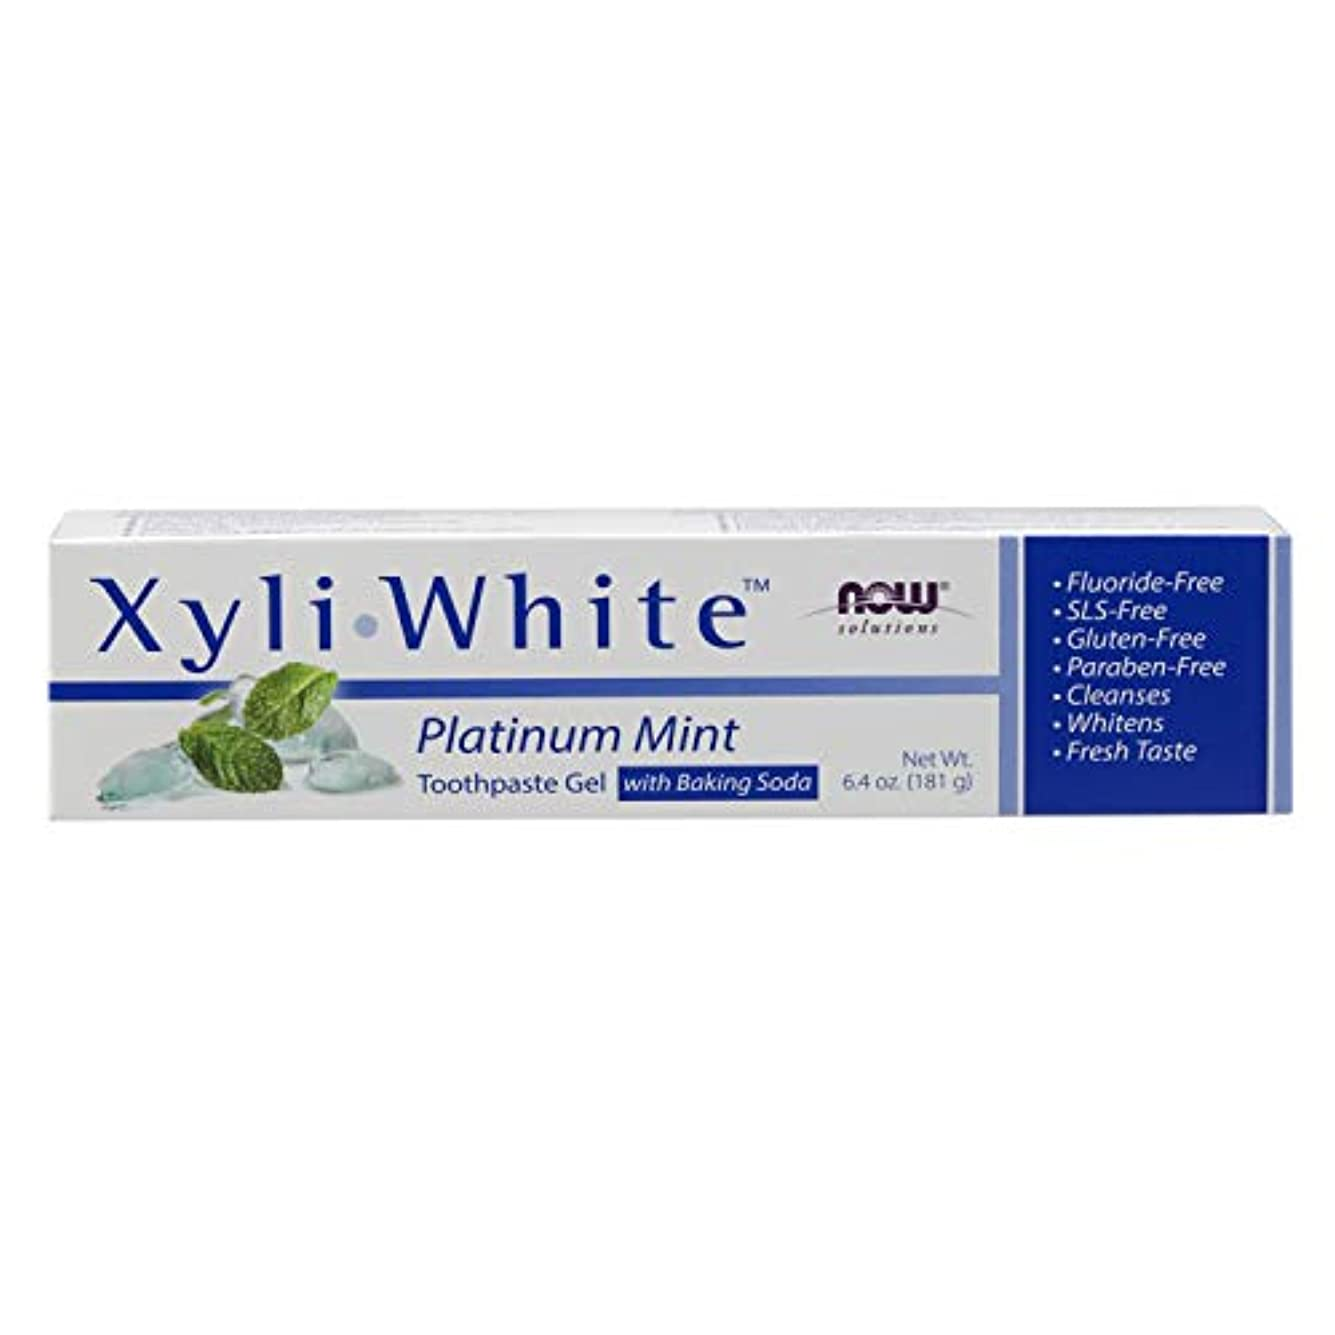 幻想空バンケット海外直送品 Now Foods Xyliwhite Platinum Mint with Baking Soda Toothpaste, 6.4 Oz